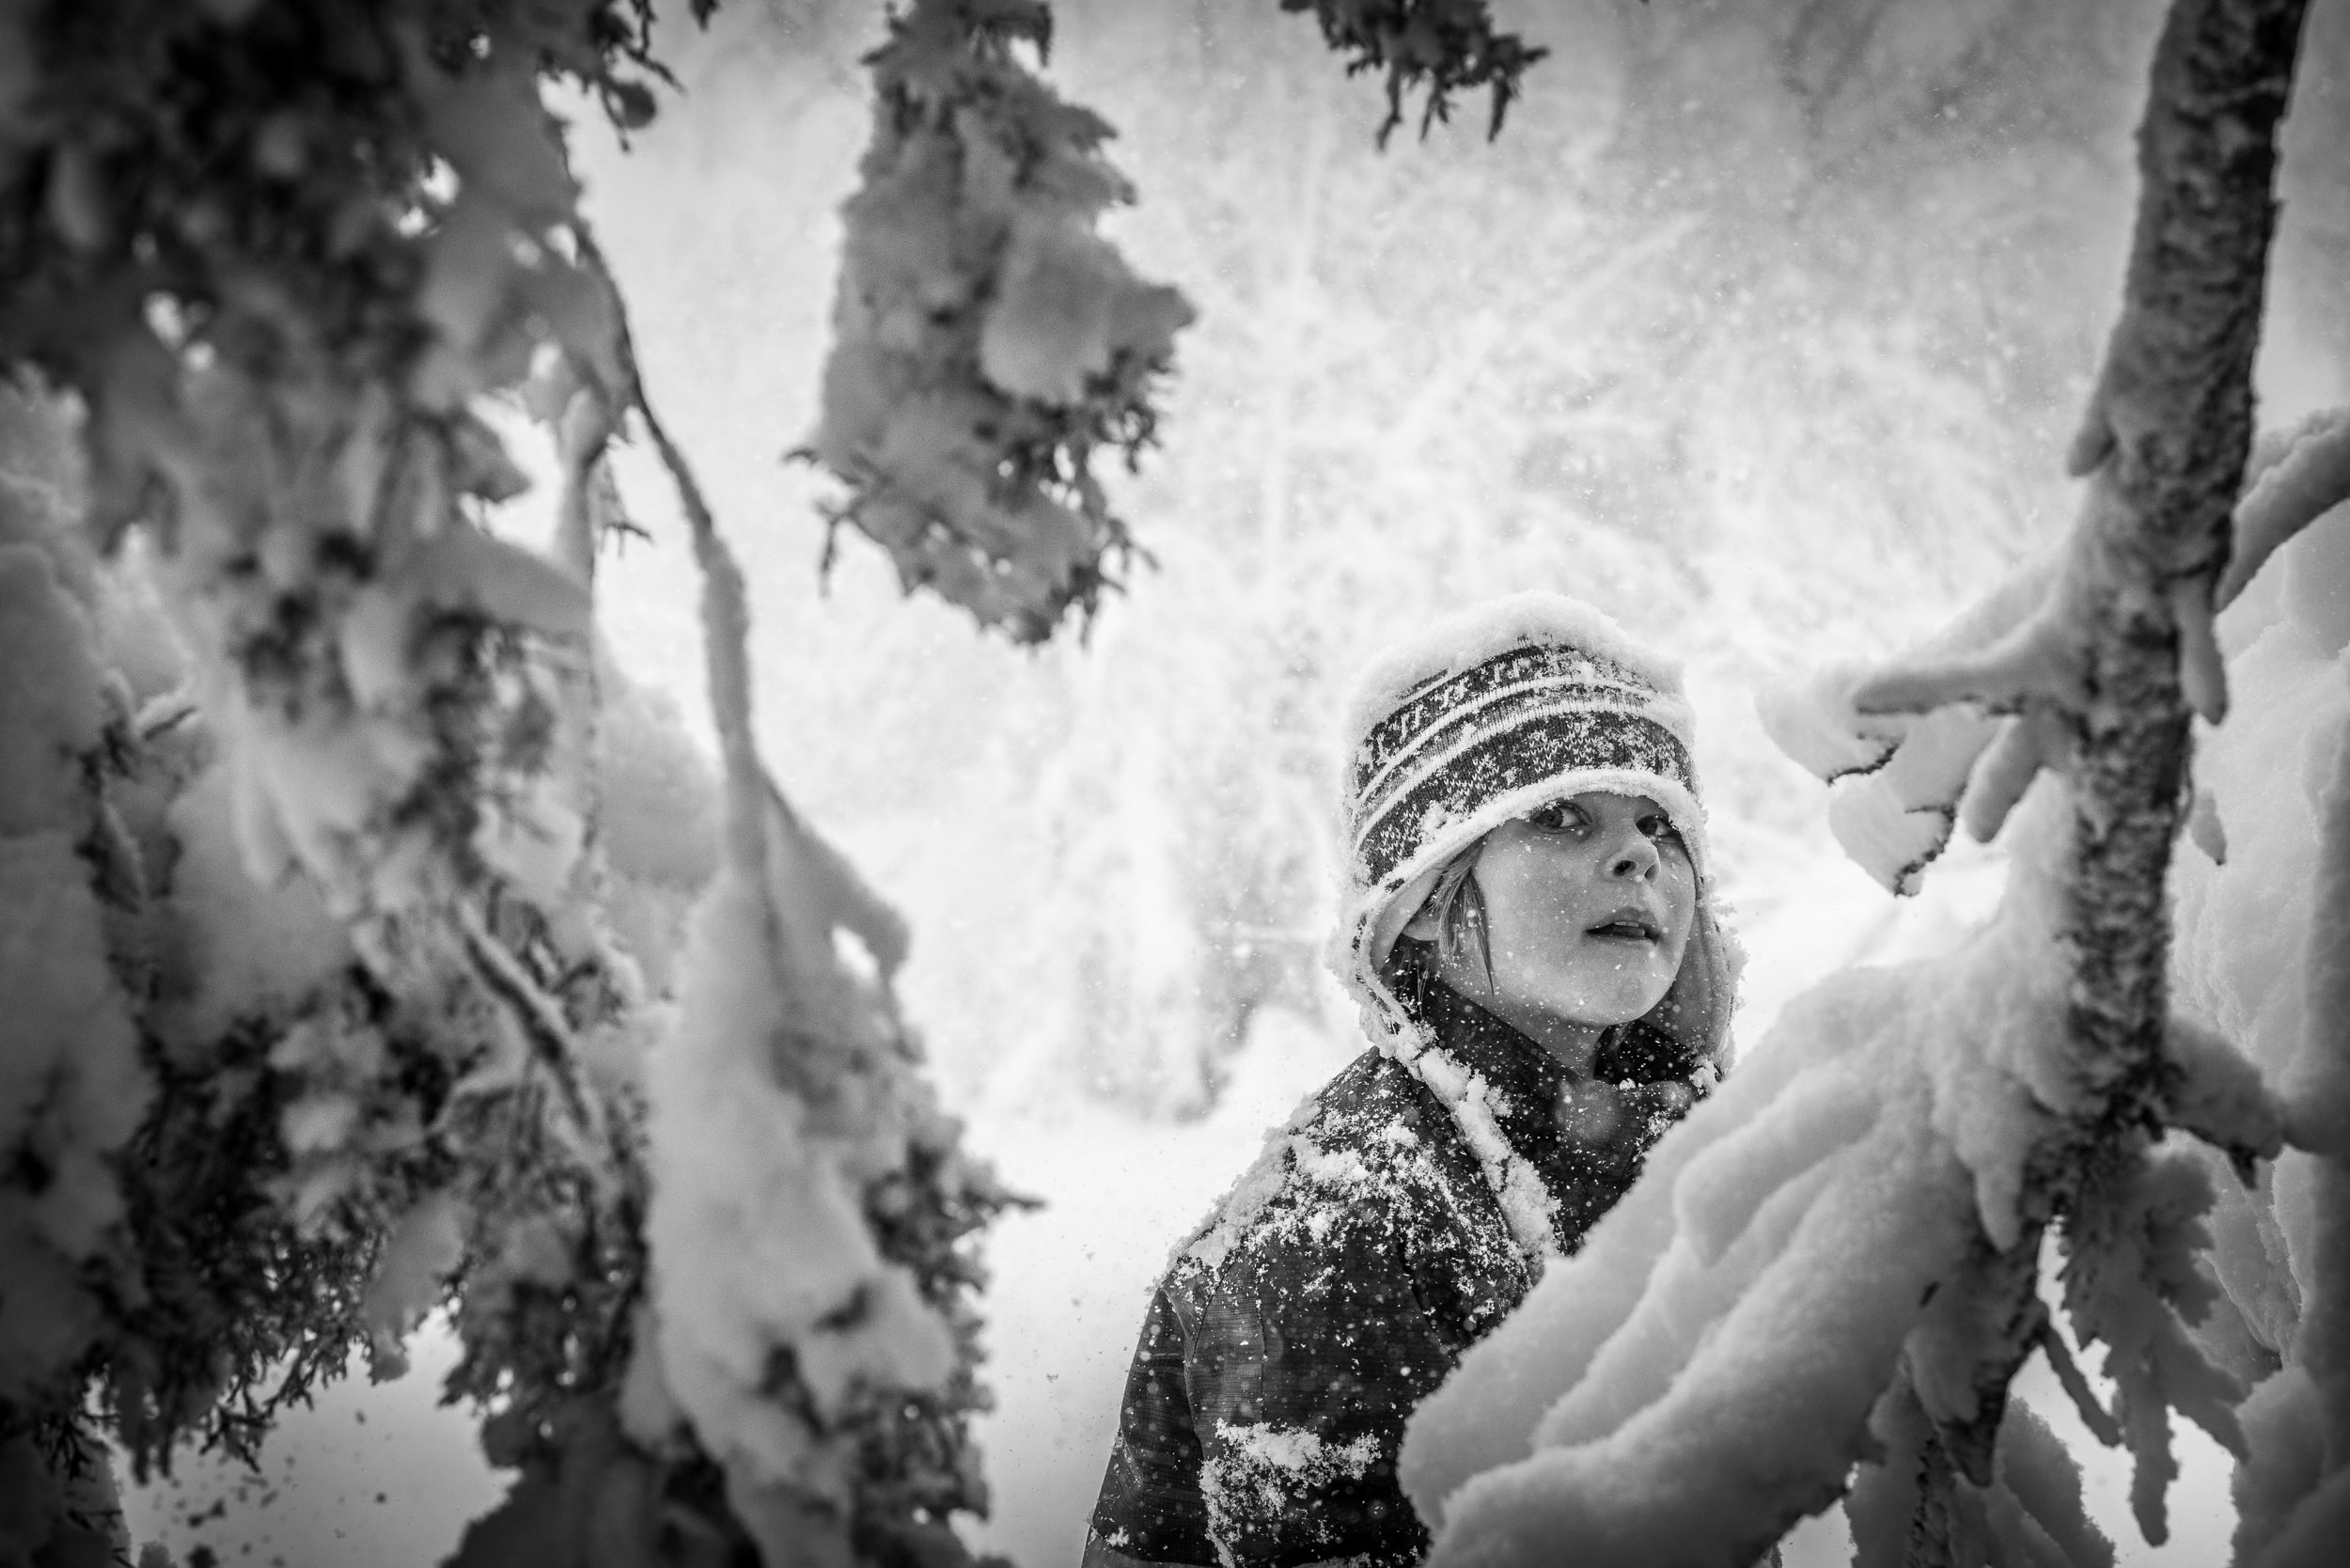 Blog - The Pen & Camera - Gratitude Journal, Denver, Colorado, Colfax - Black and White Documentary Childhood Photography - boy in snowy trees